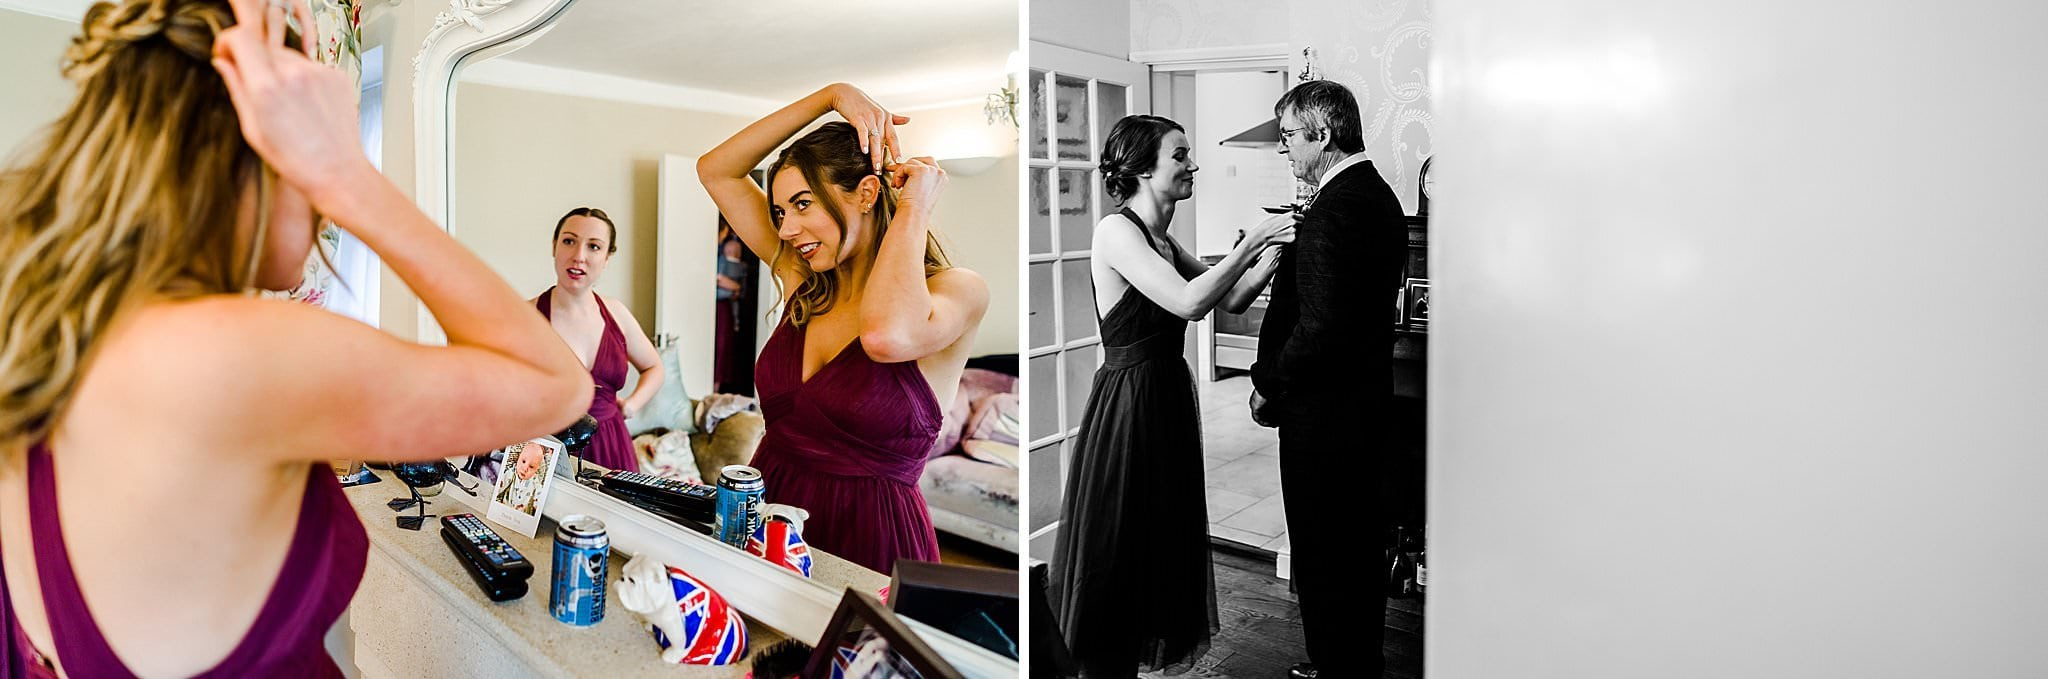 Bridesmaid fixes her hair in the mirror whilst another bridesmaid sorts bride's father's button hole